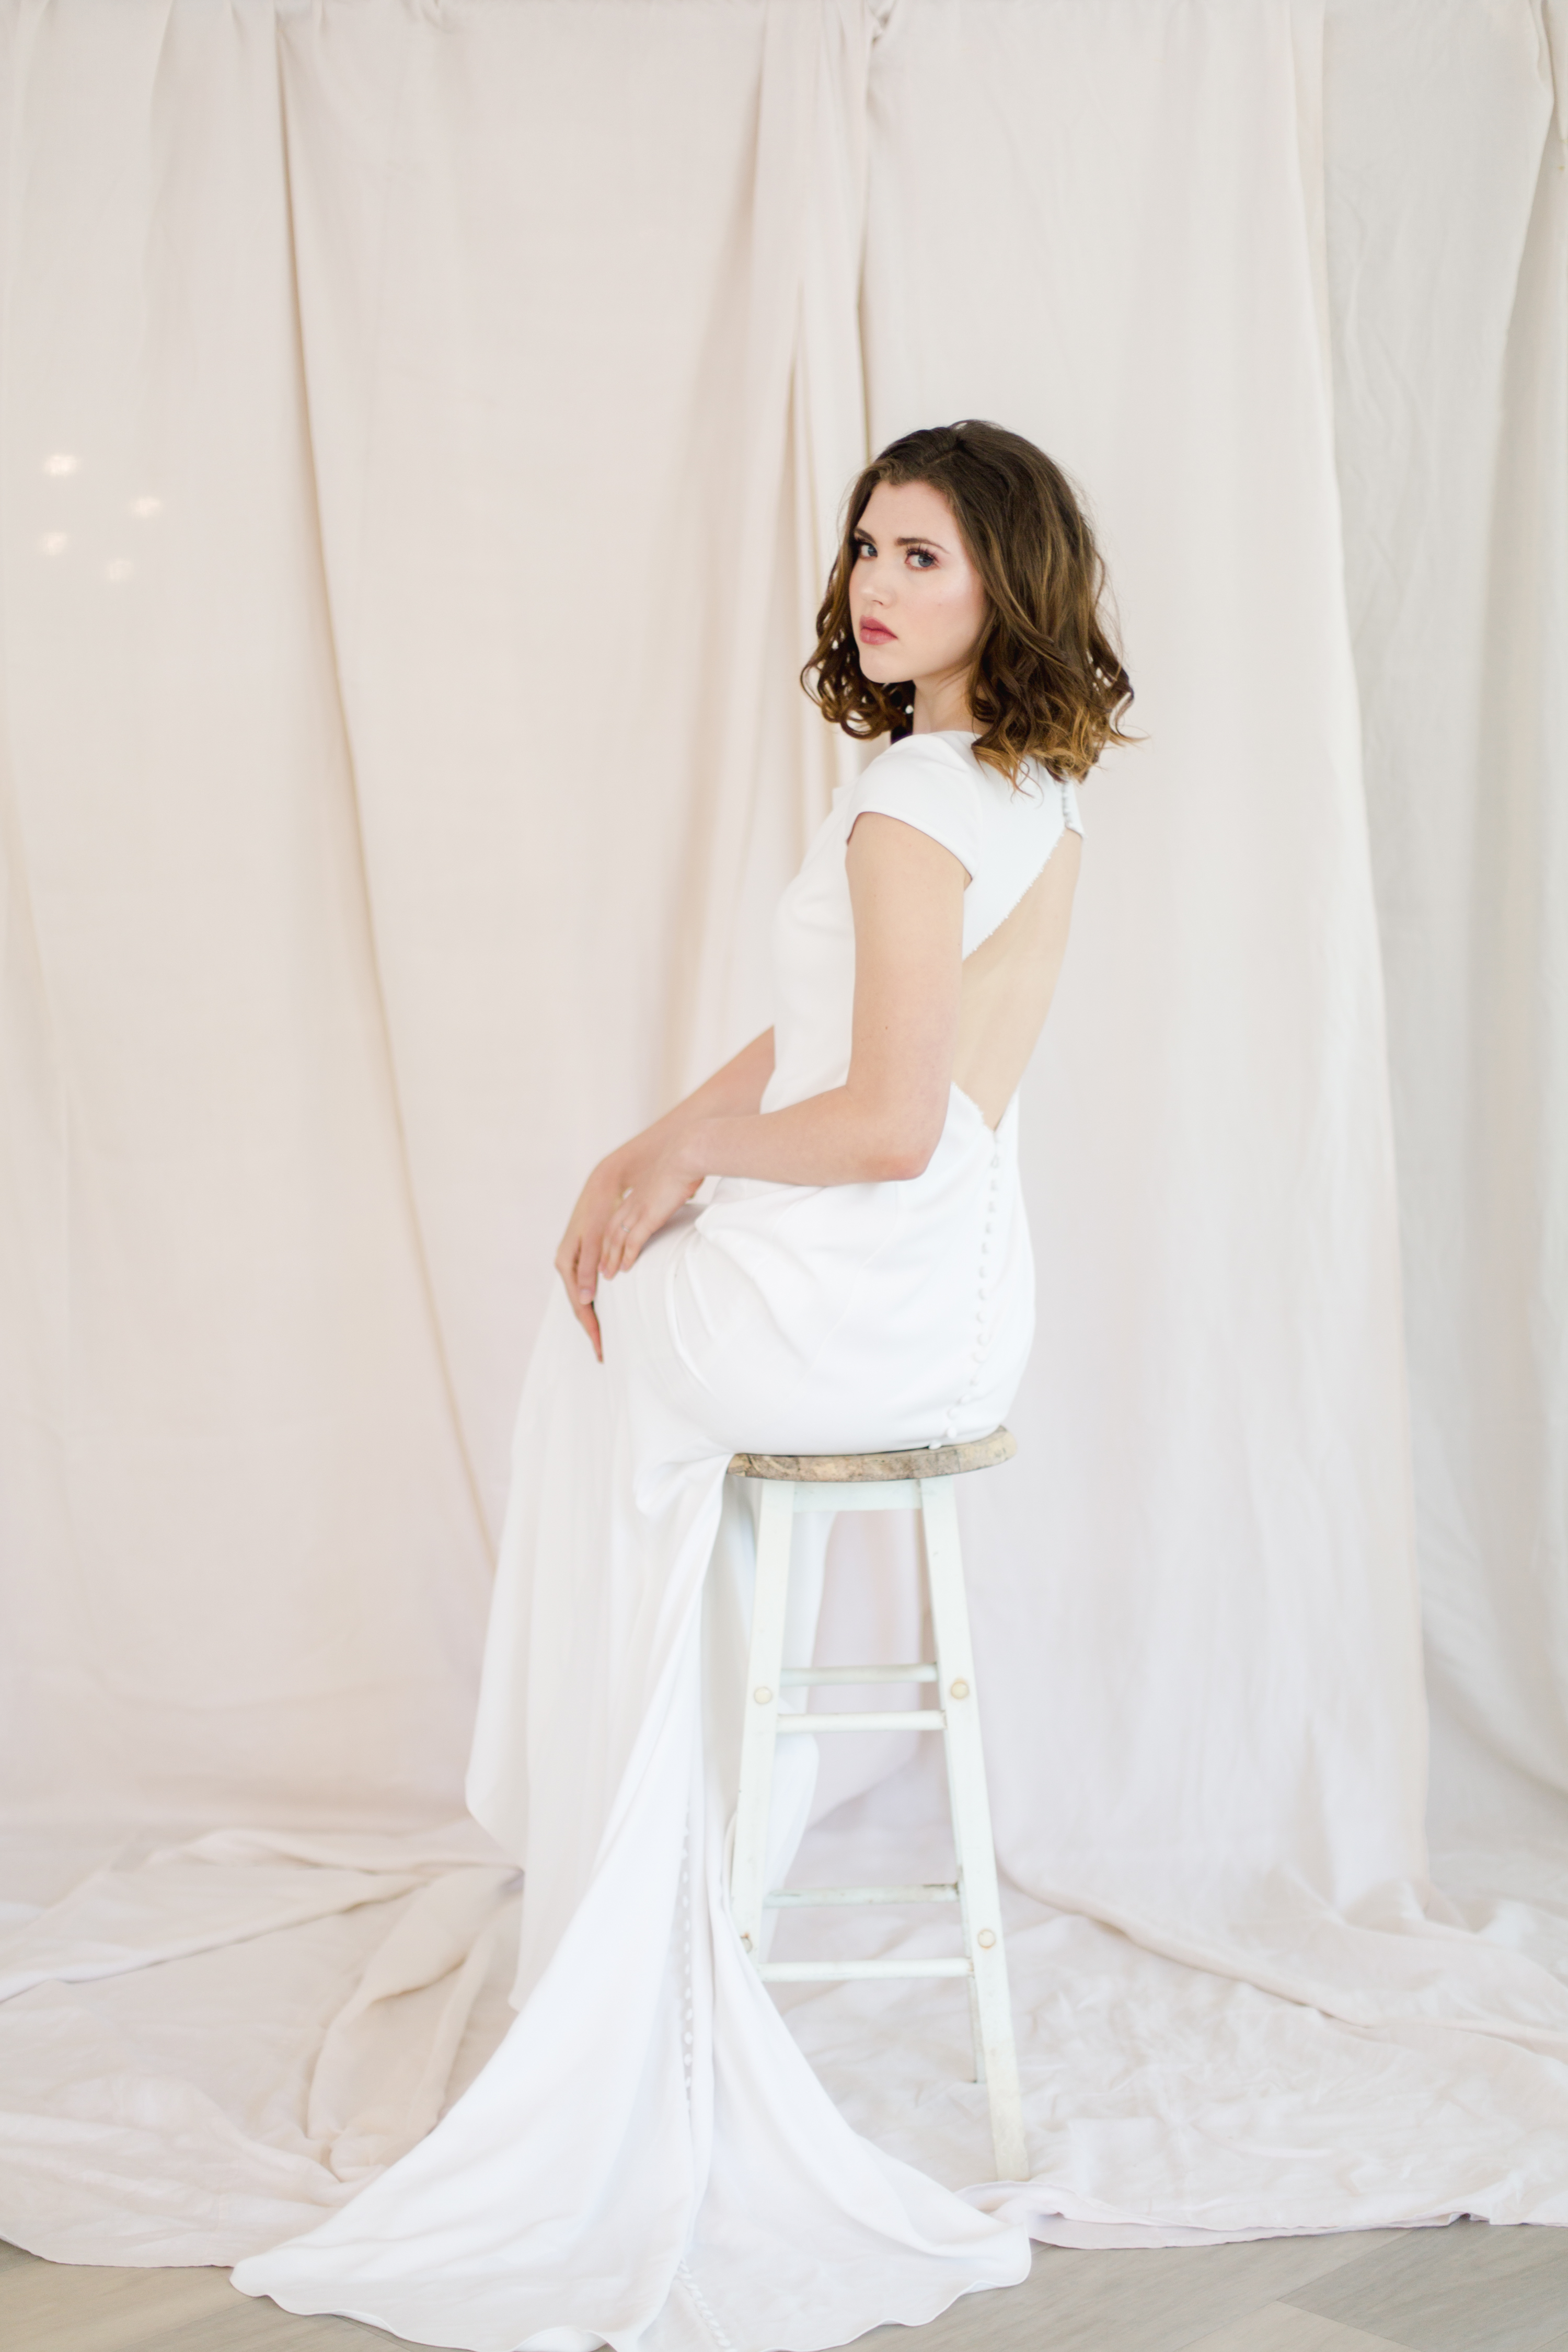 Bride showing off open back dress from Paula's Elegant Bride in St. Catharines